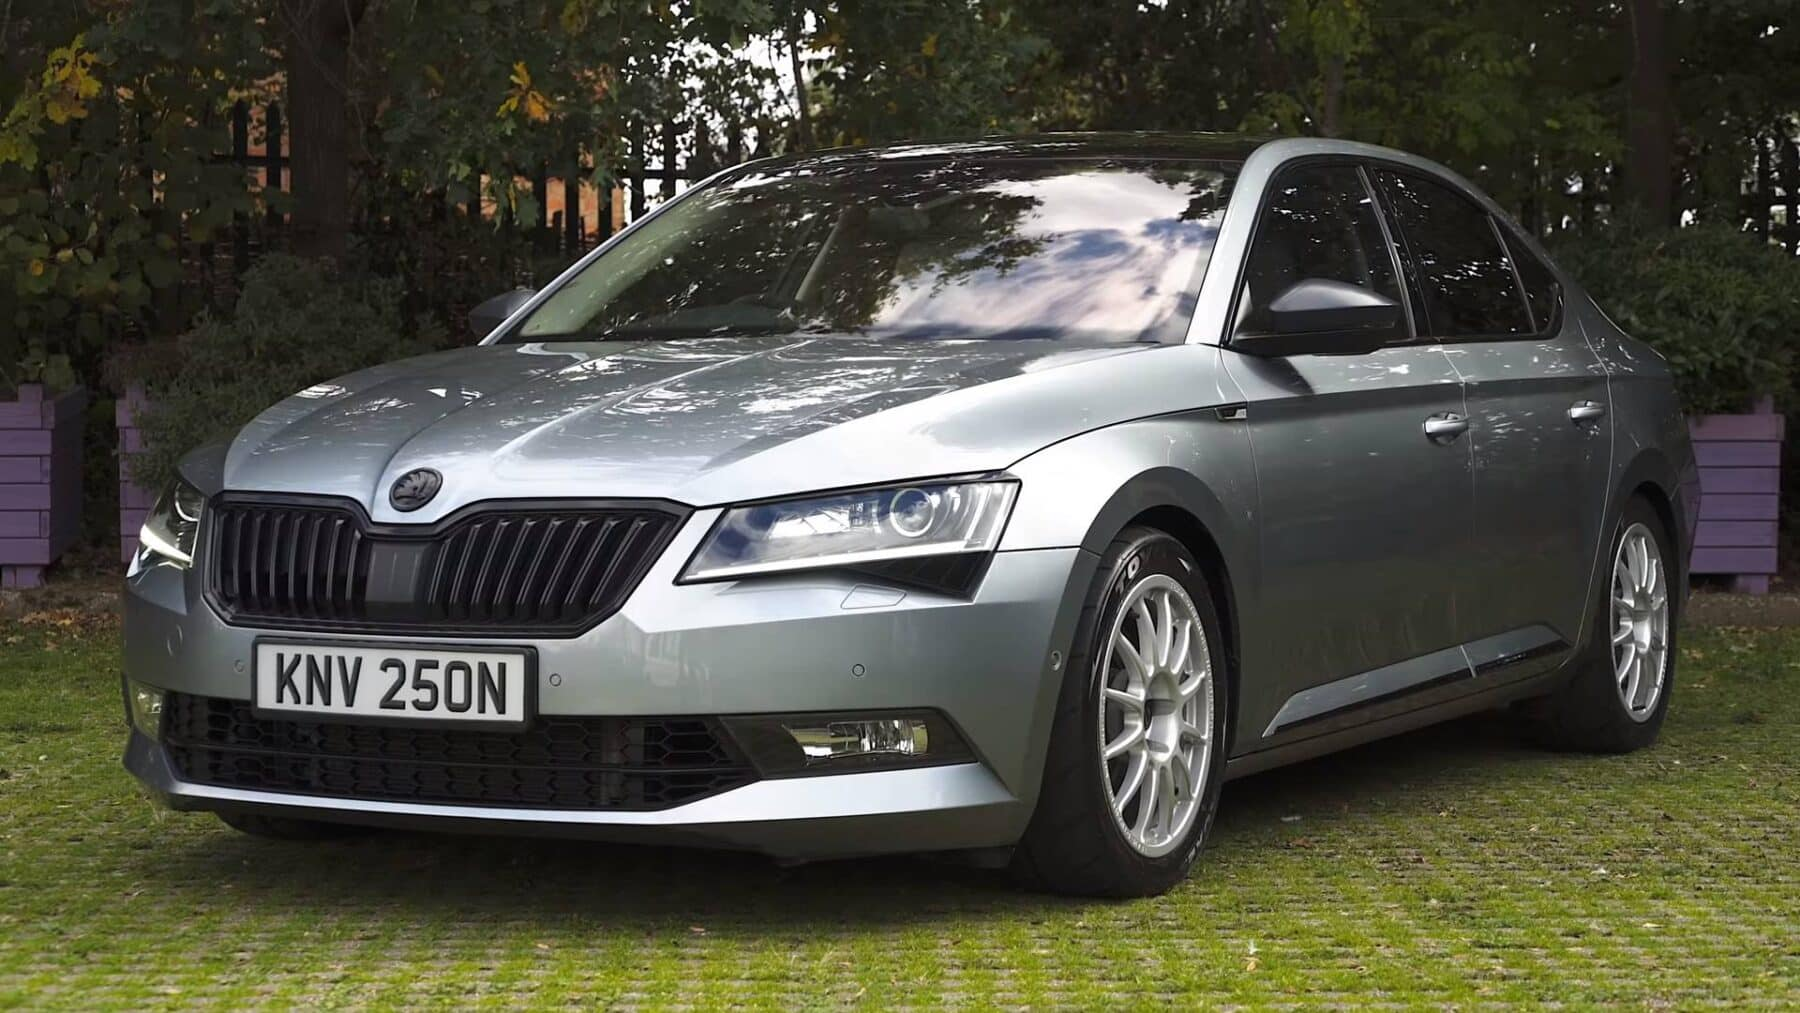 este skoda superb es un aut ntico 39 sleeper 39 con 560 cv. Black Bedroom Furniture Sets. Home Design Ideas